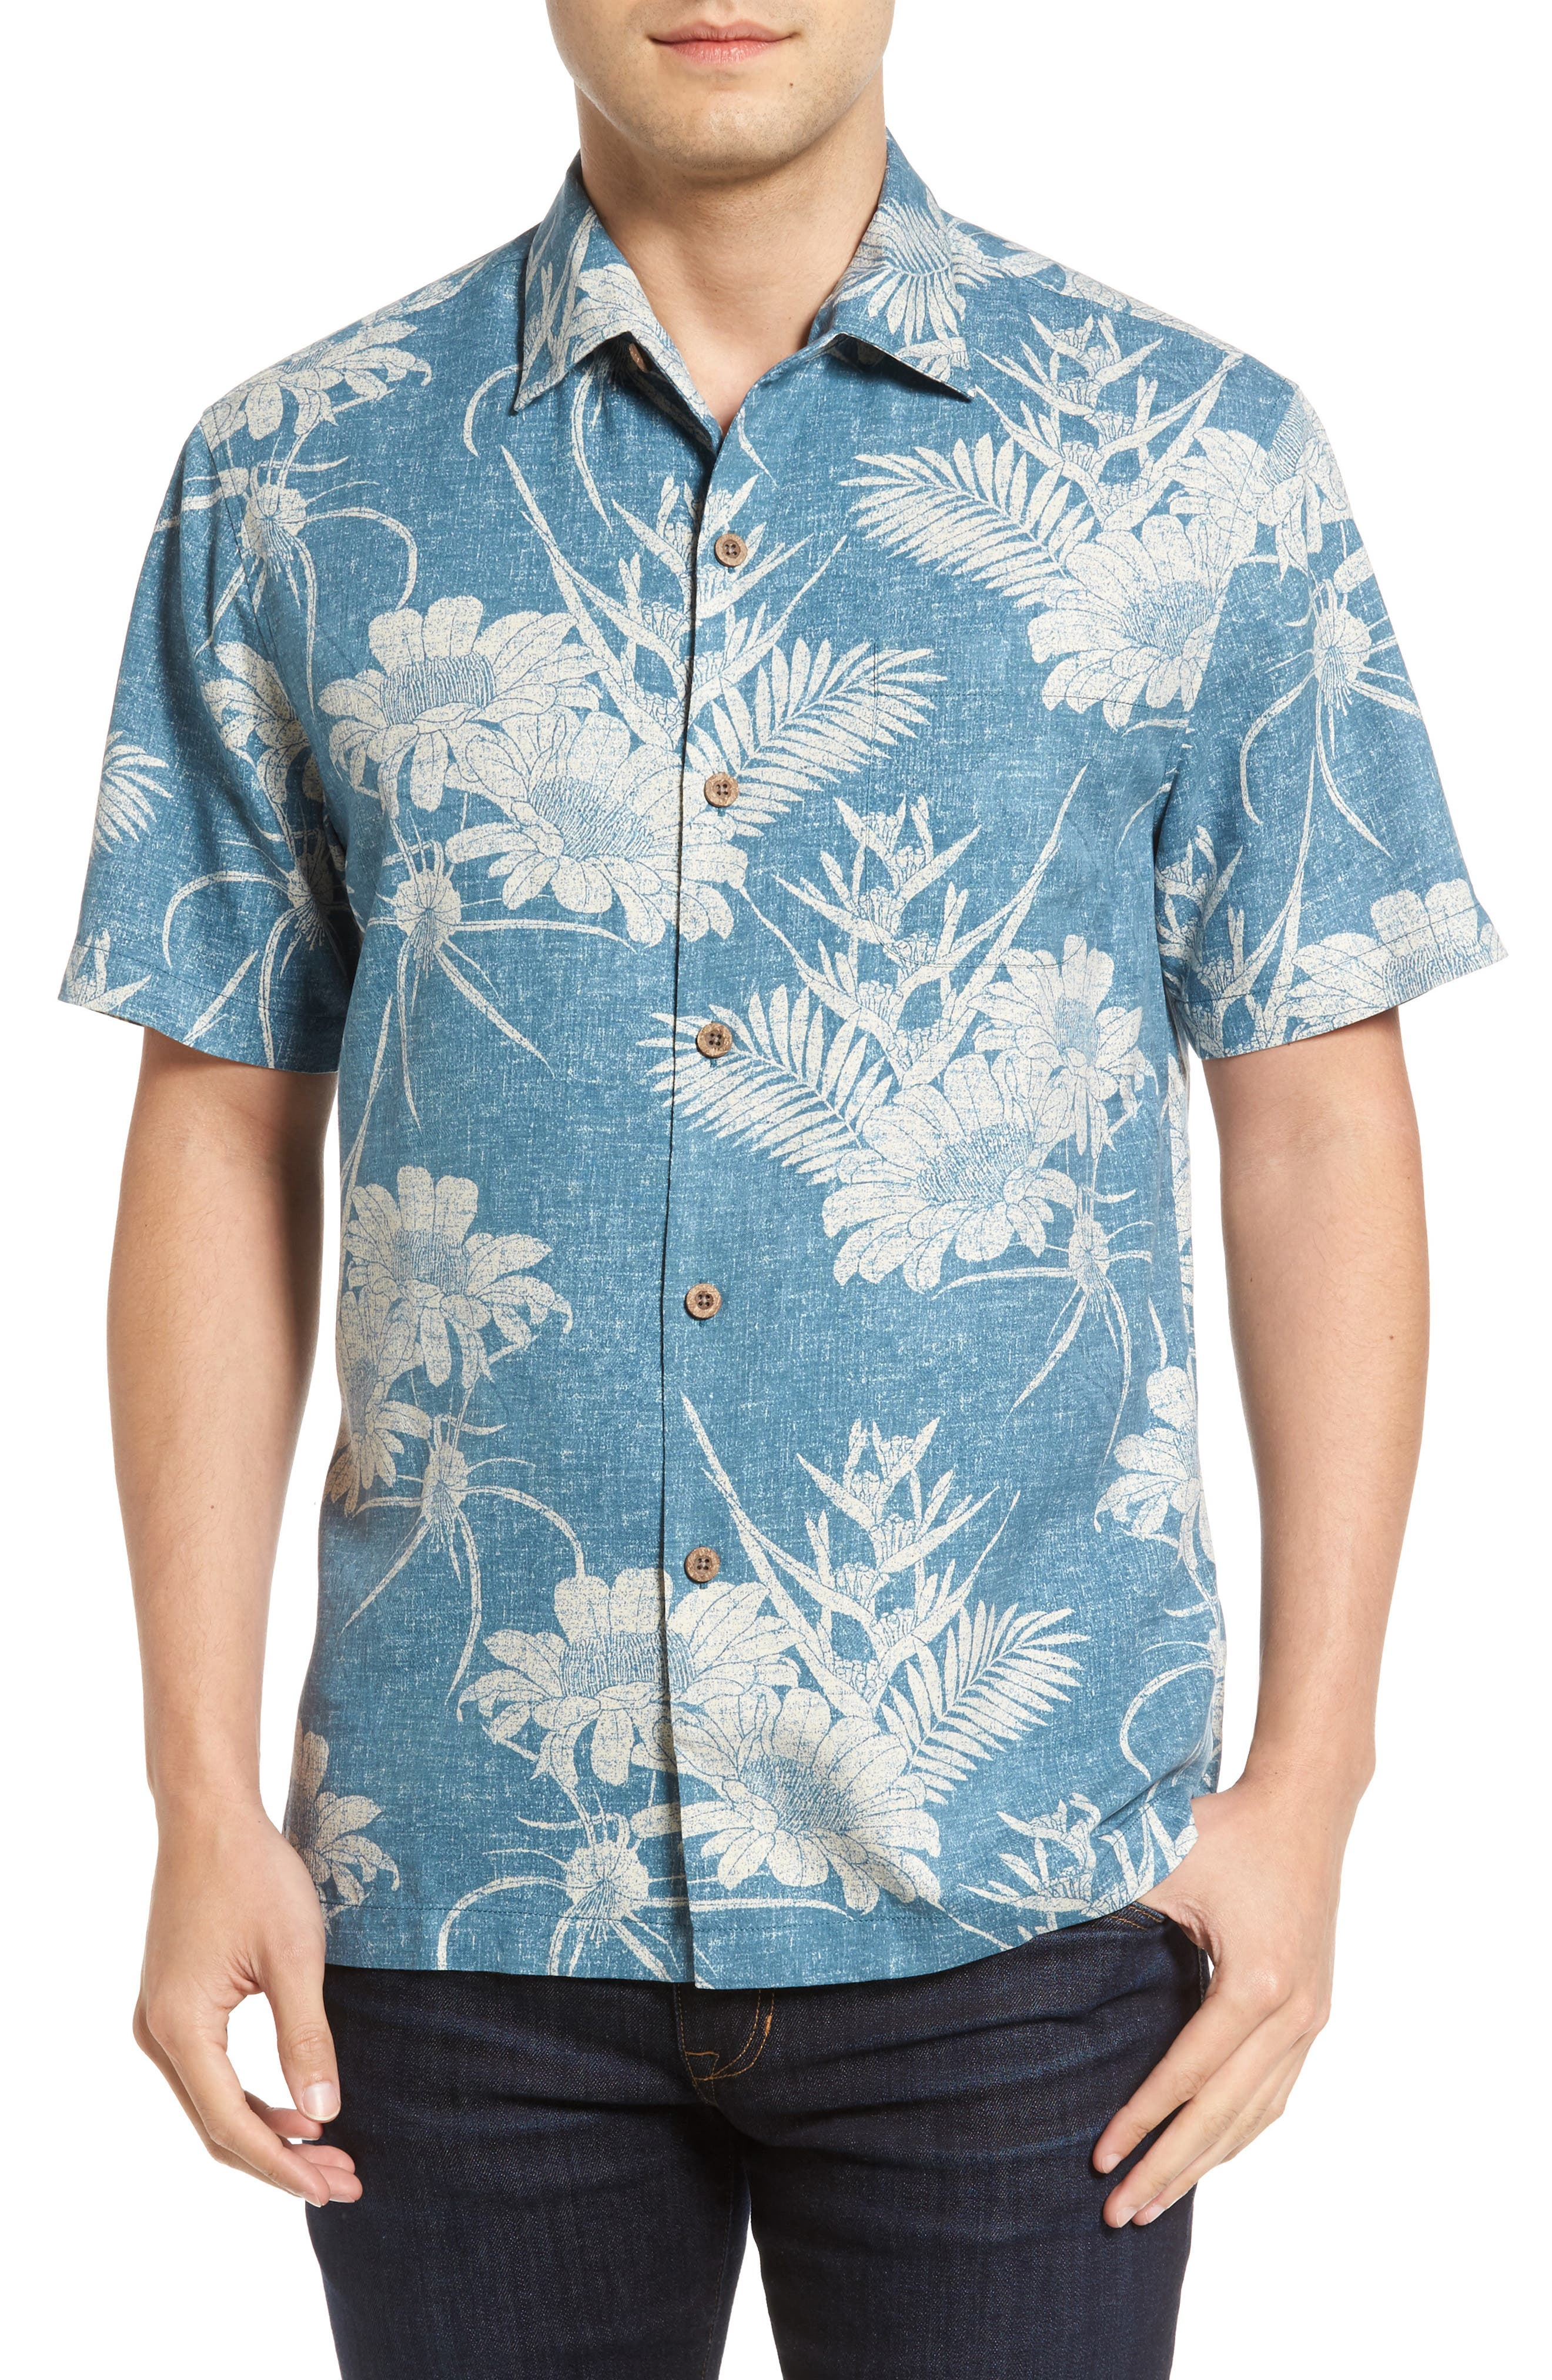 Tommy Bahama Sand Torini Blooms Standard Fit Camp Shirt